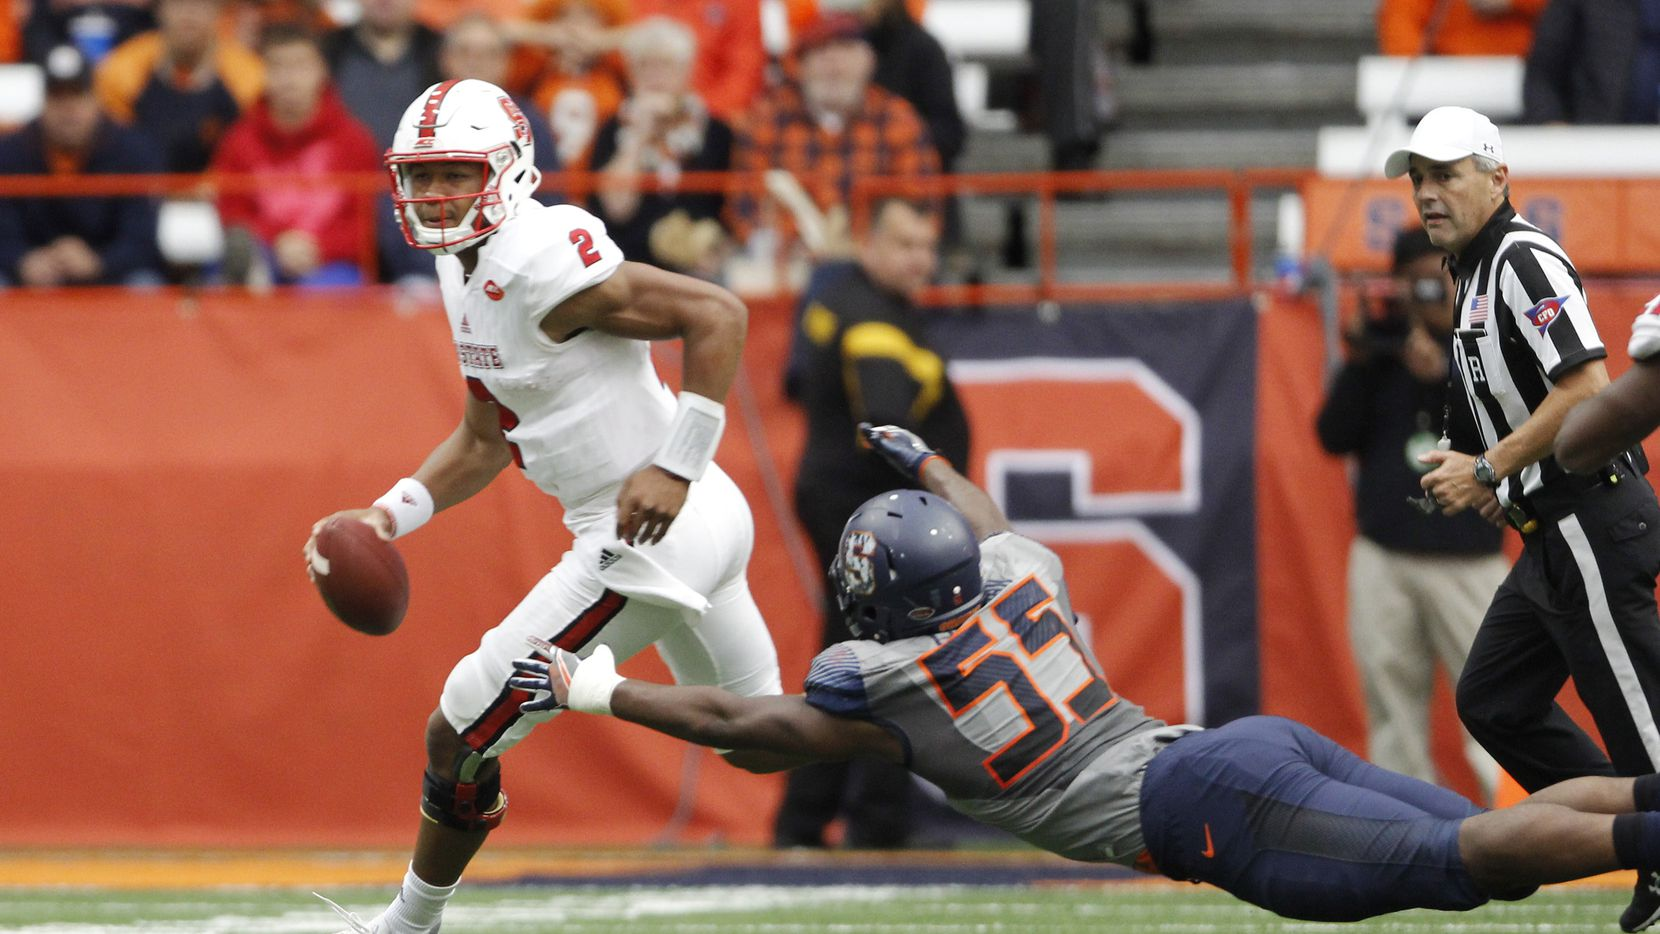 Syracuse's Kendall Coleman, right, dives to tackle North Carolina State's Jalan McClendon, left, in the second quarter of an NCAA college football game in Syracuse, N.Y., Saturday, Nov. 12, 2016. (AP Photo/Nick Lisi)